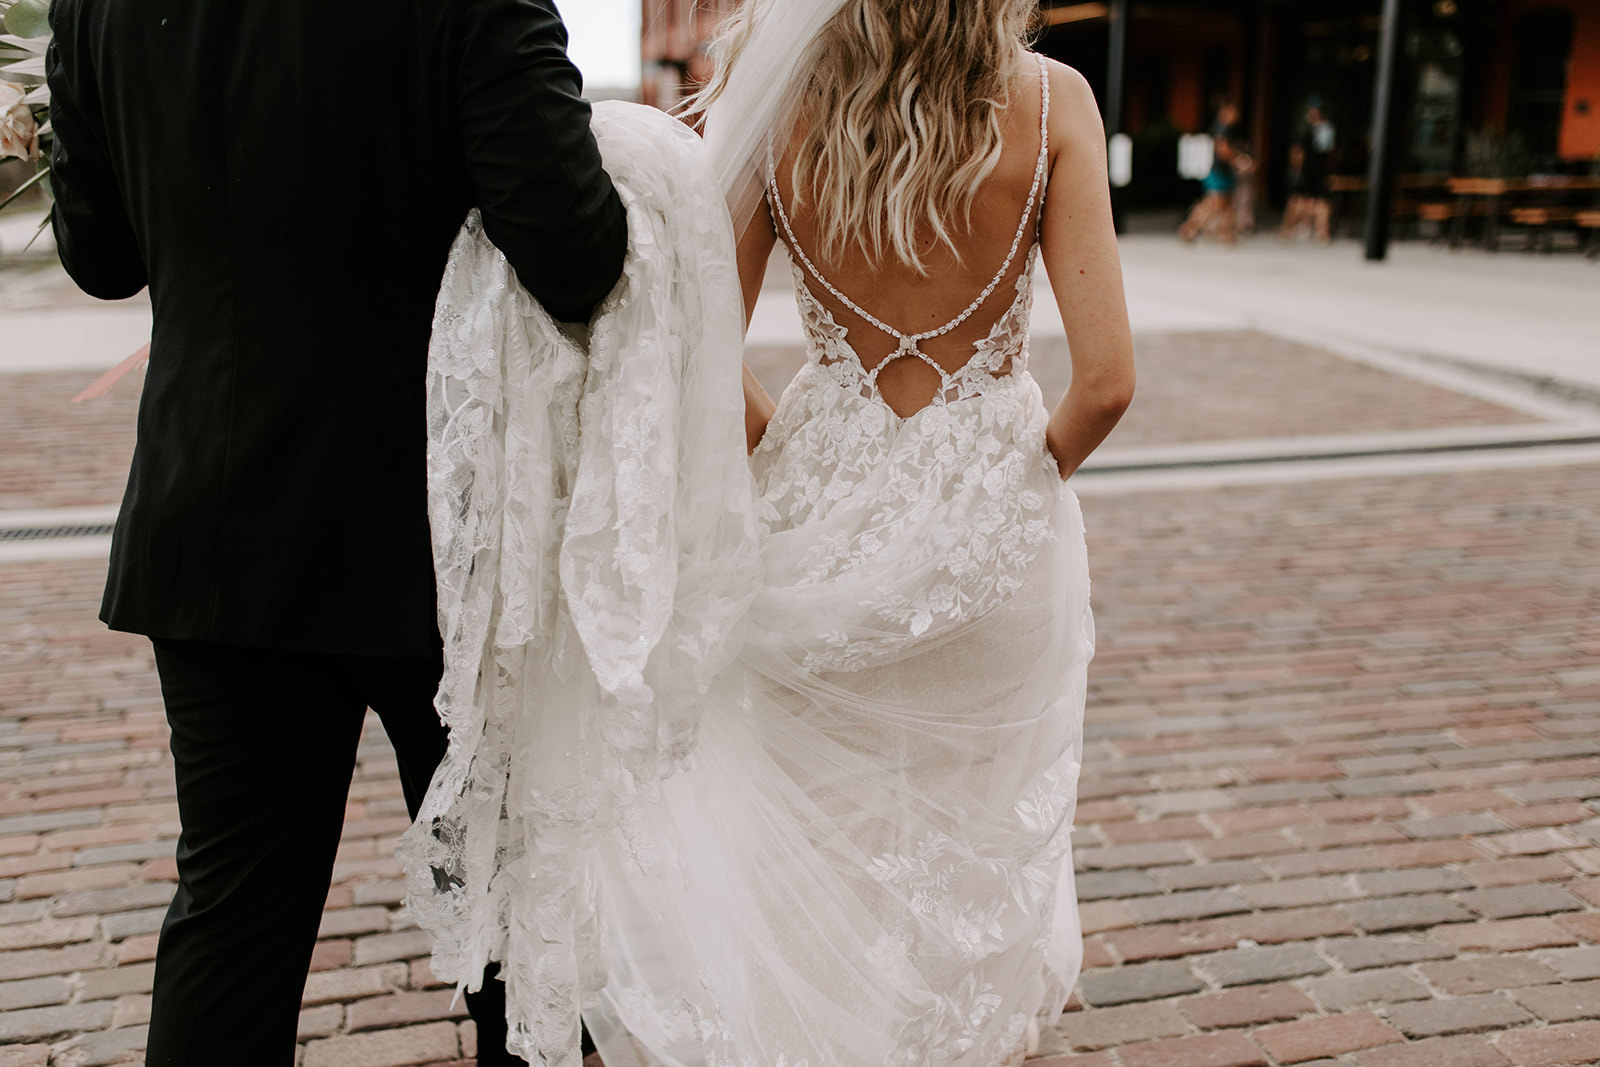 Creative Artsy Bride and Groom Portrait From Behind, Groom Holding Bride's Open Back with Rhinestone Straps Lace and Tulle Martina Liana Wedding Dress